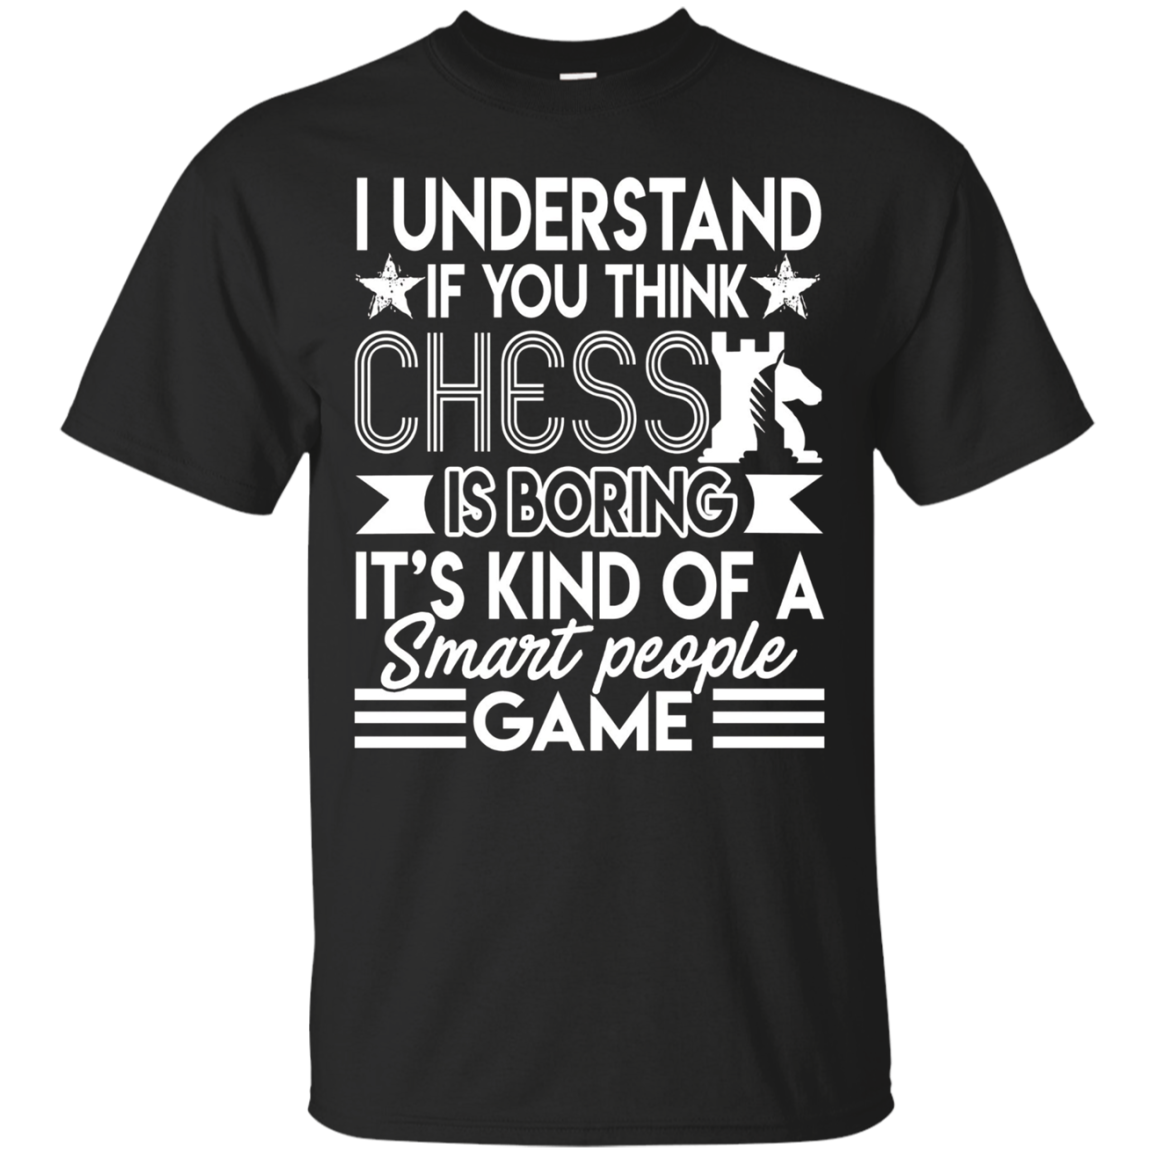 Chess Shirt - Chess T Shirt